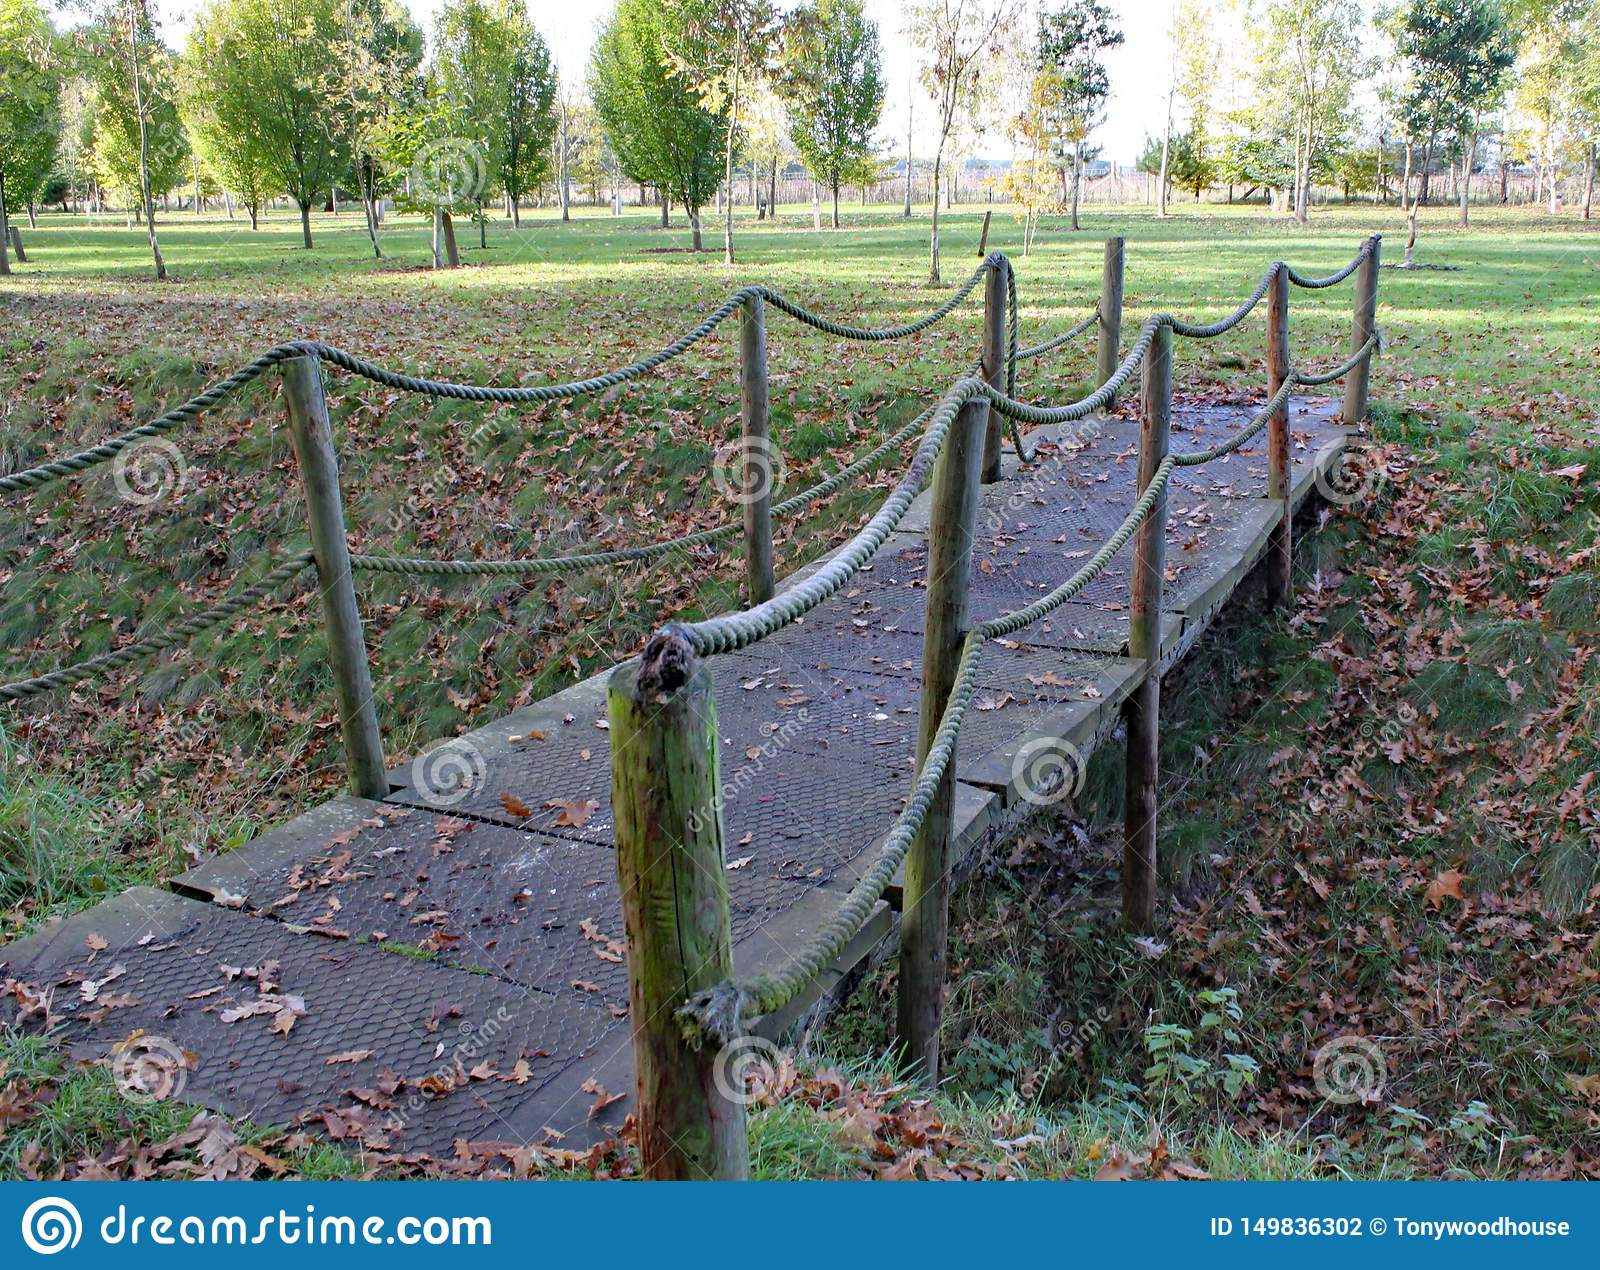 A small rope bridge crosses a ditch at Arley Arboretum in the Midlands in England